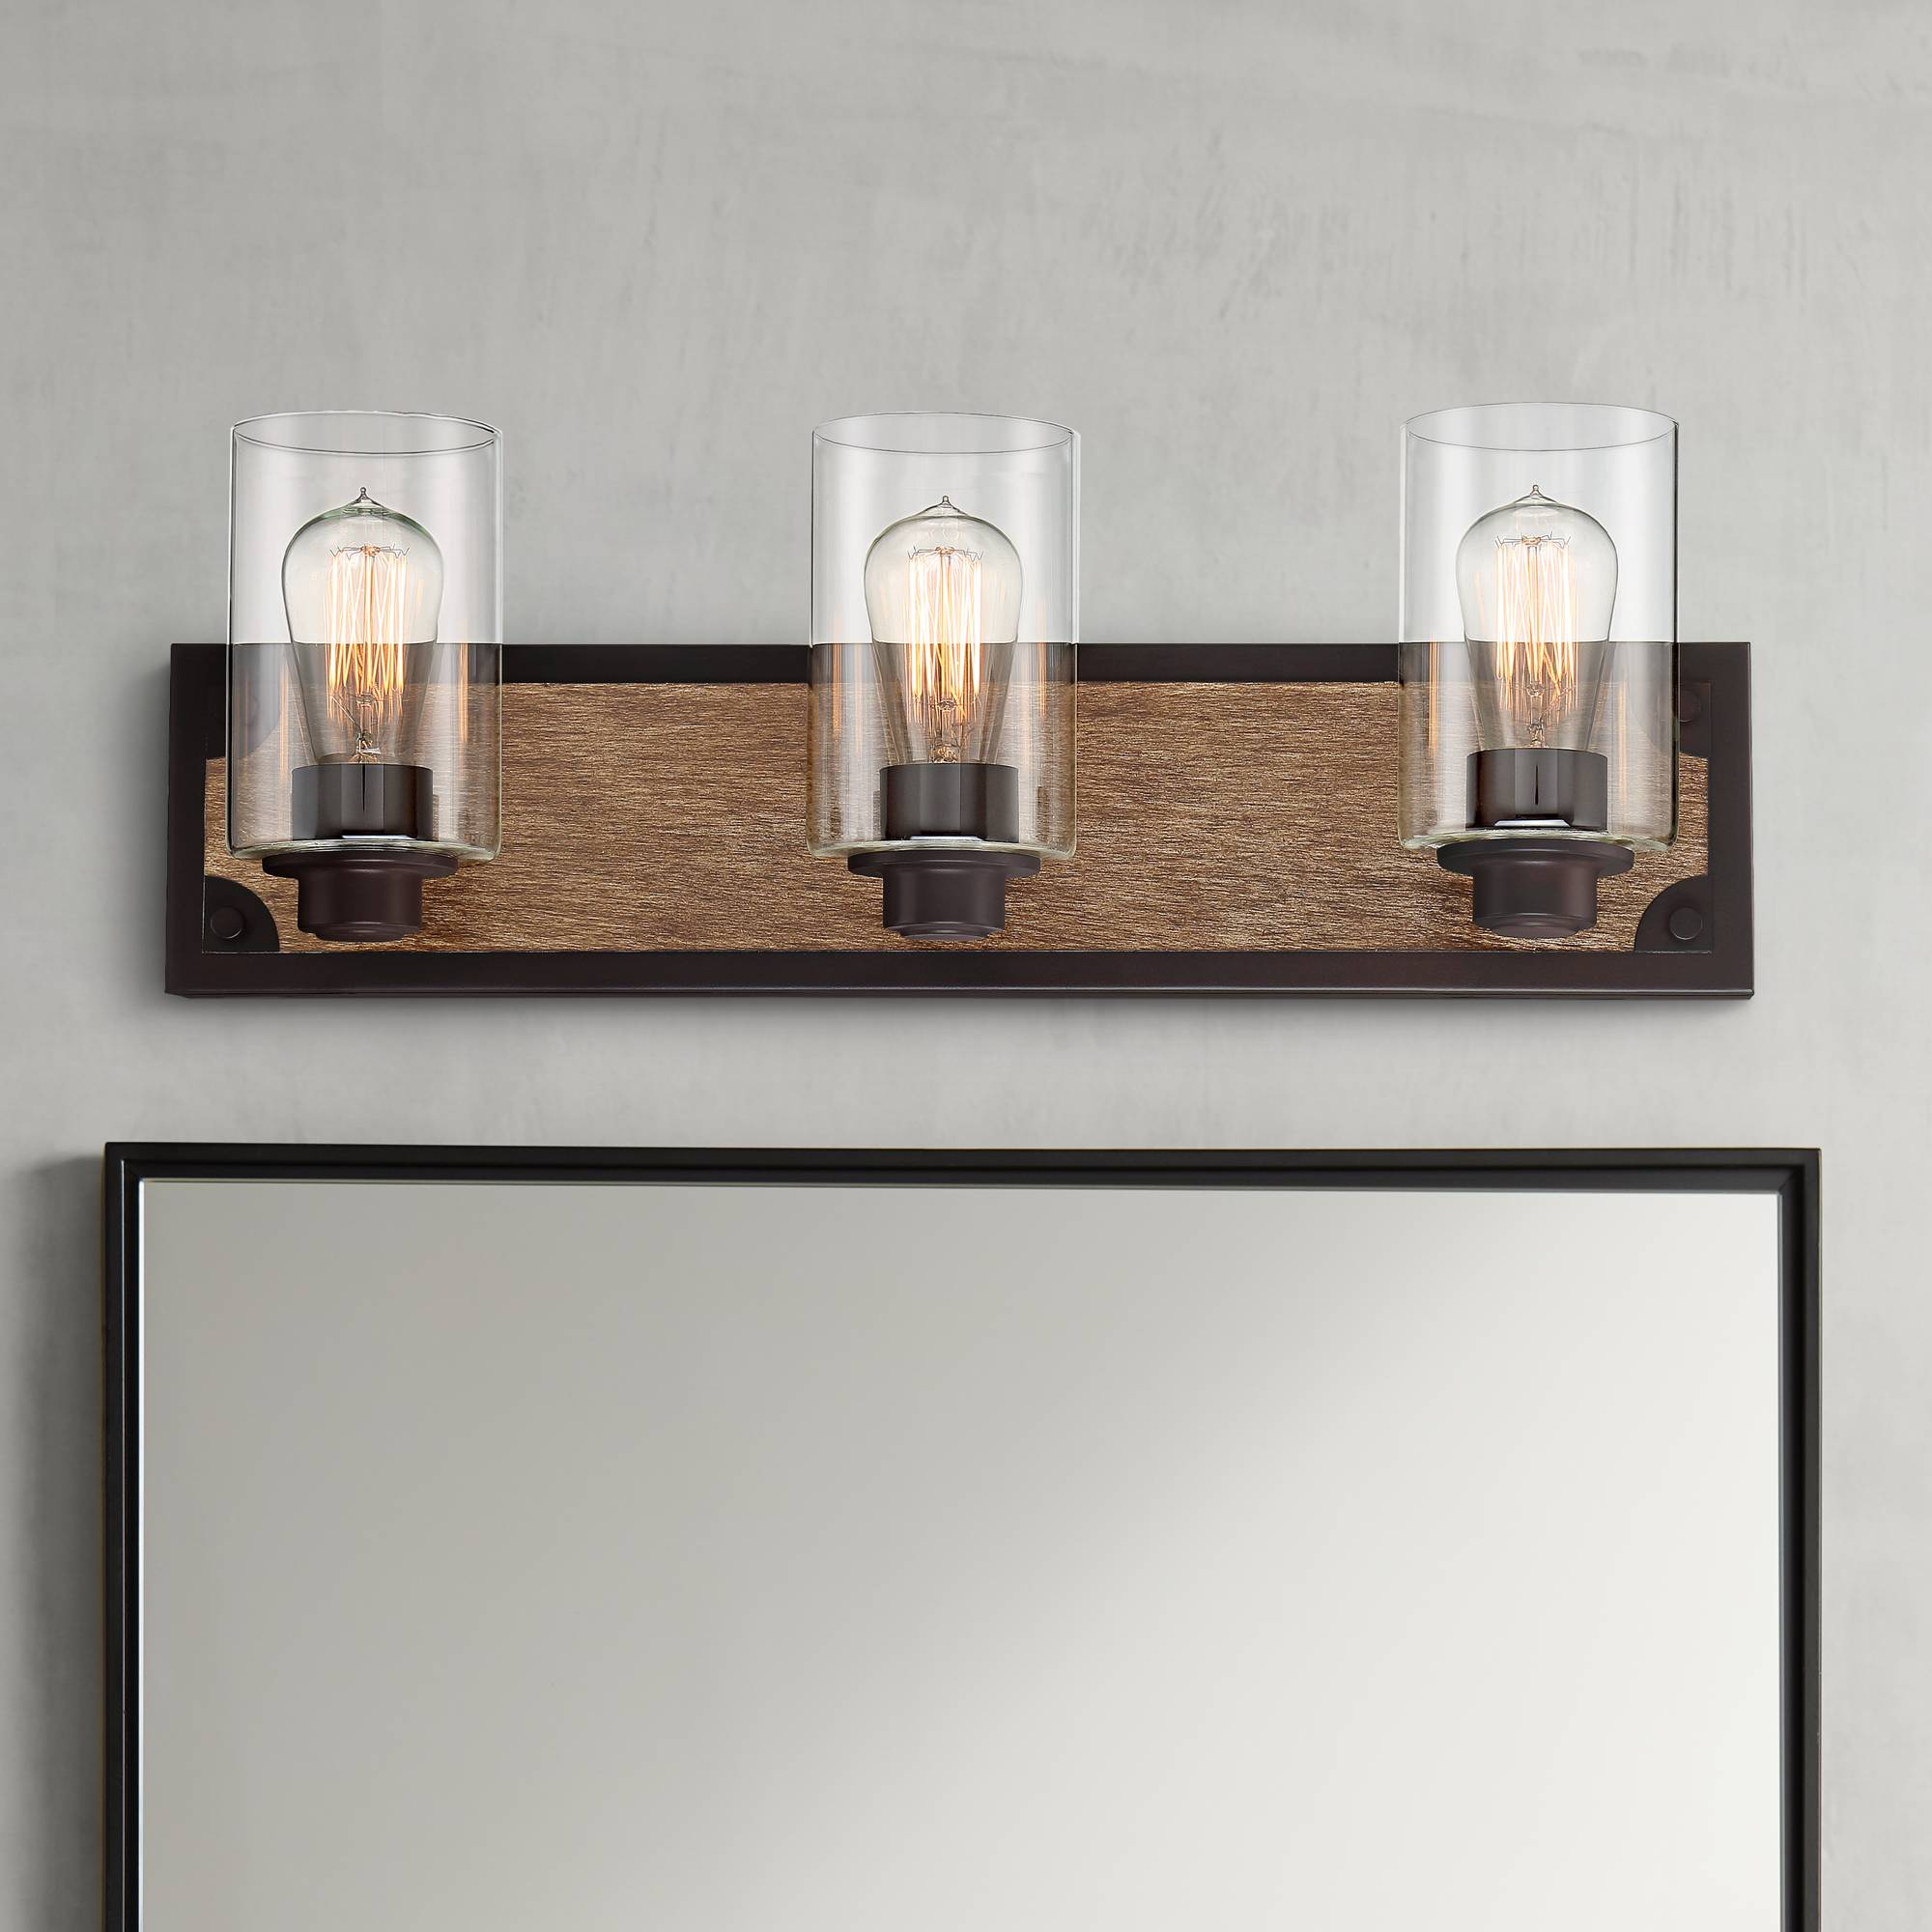 Details About Rustic Farmhouse Wall Light Wood Accented Black 23 3 Fixture For Bathroom